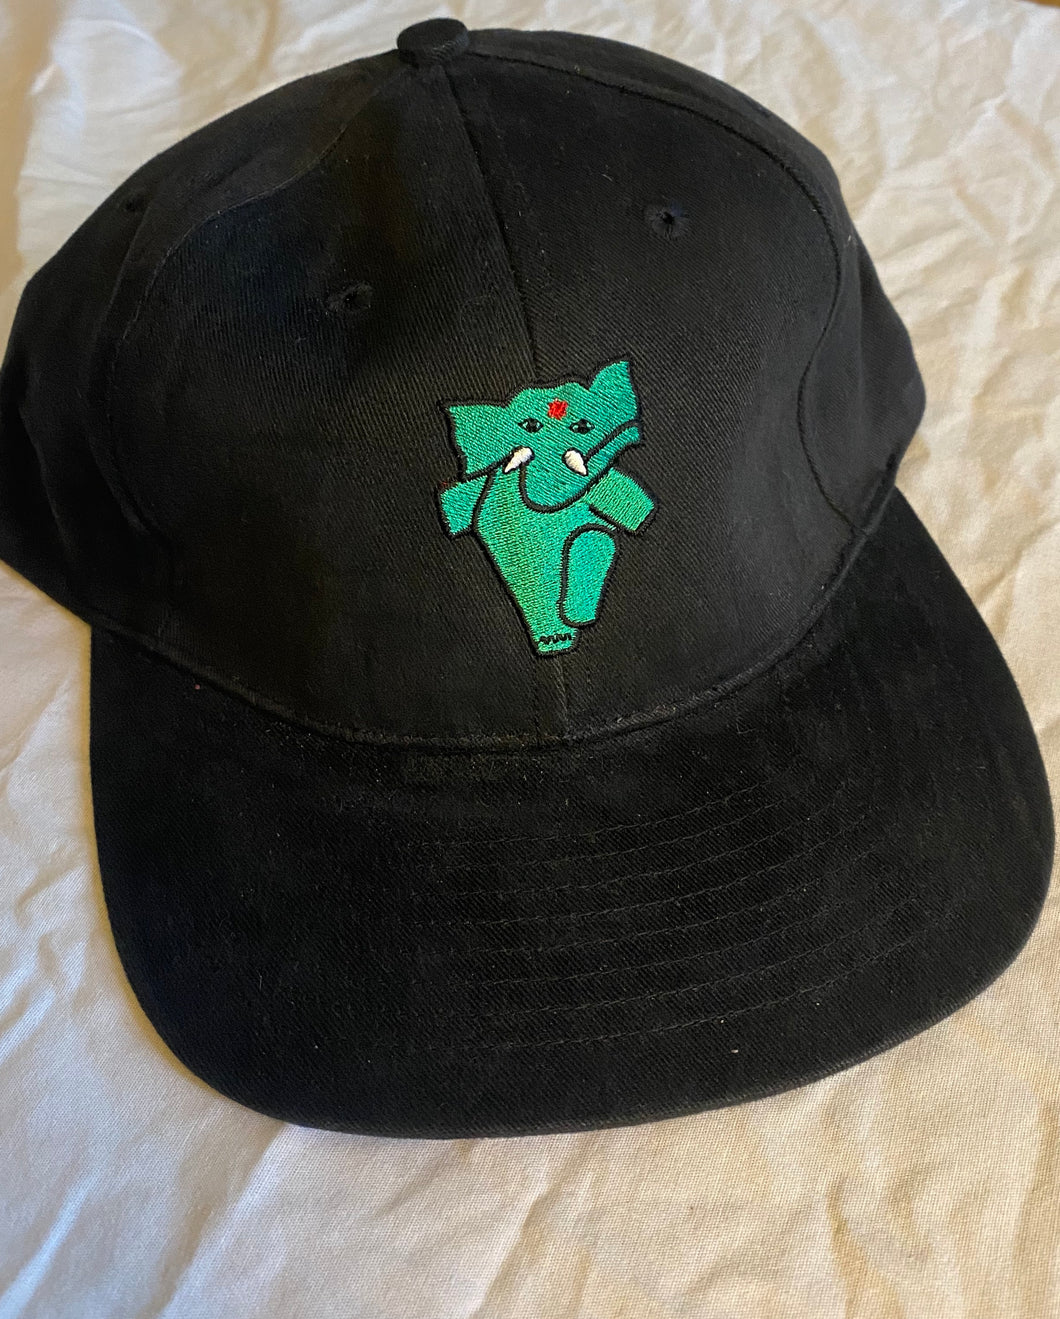 RARE green Appa on black hat